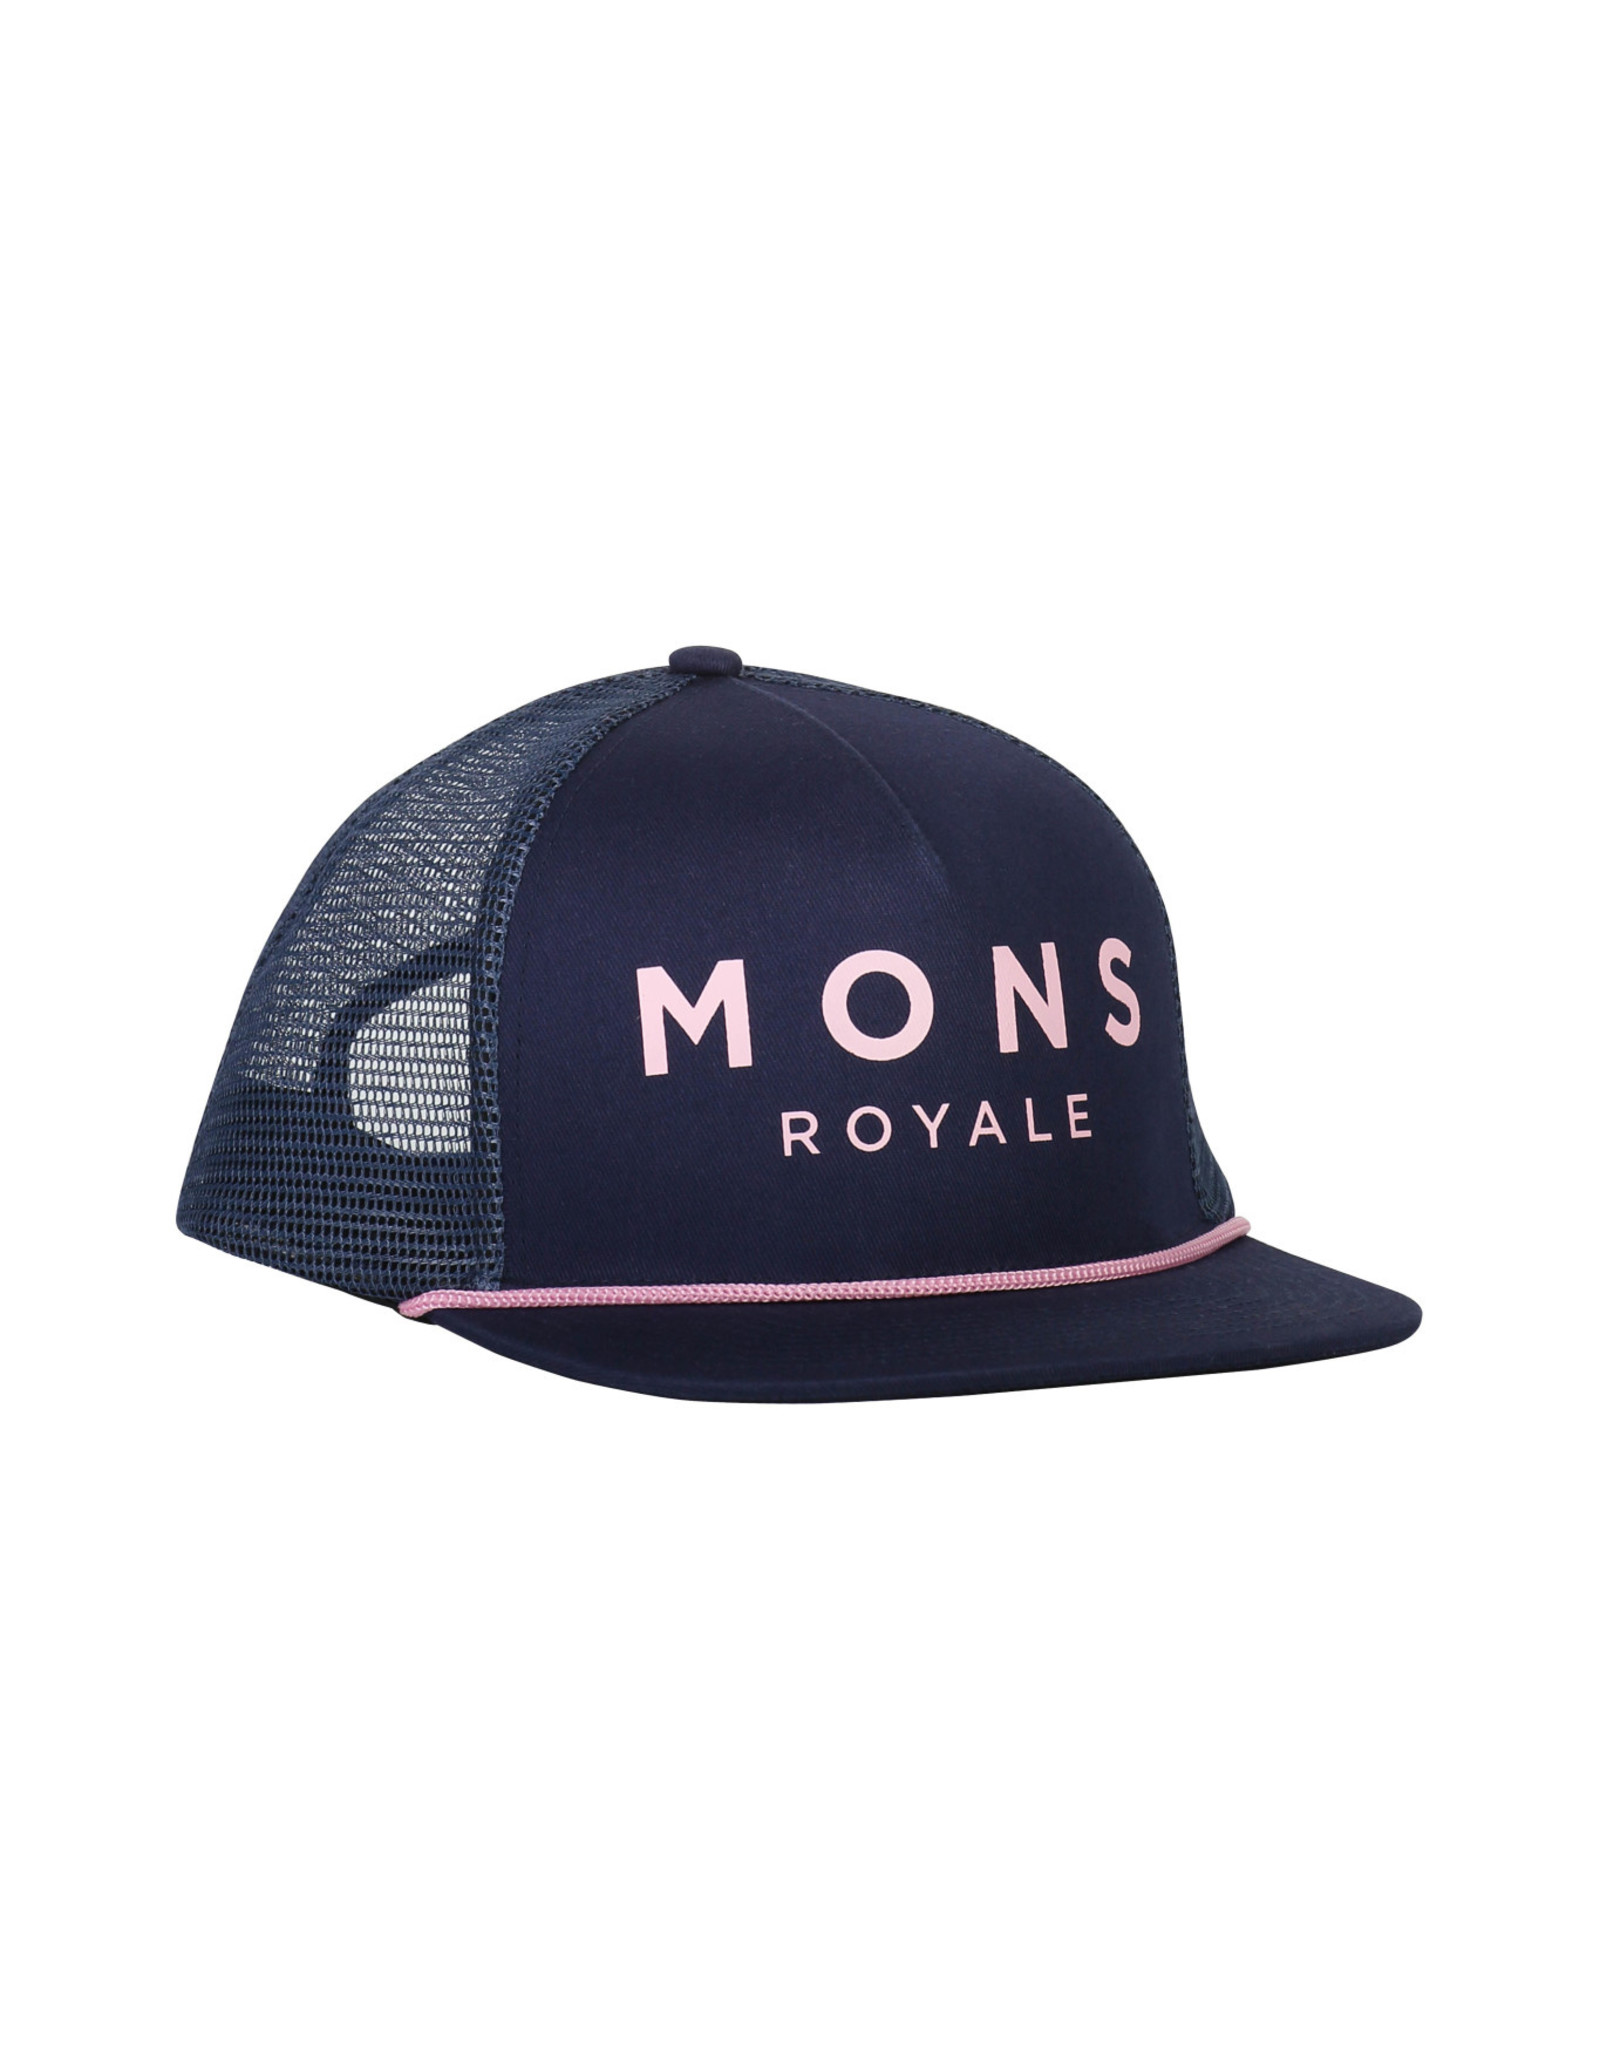 Mons Royale The ACL Trucker Cap -S2021